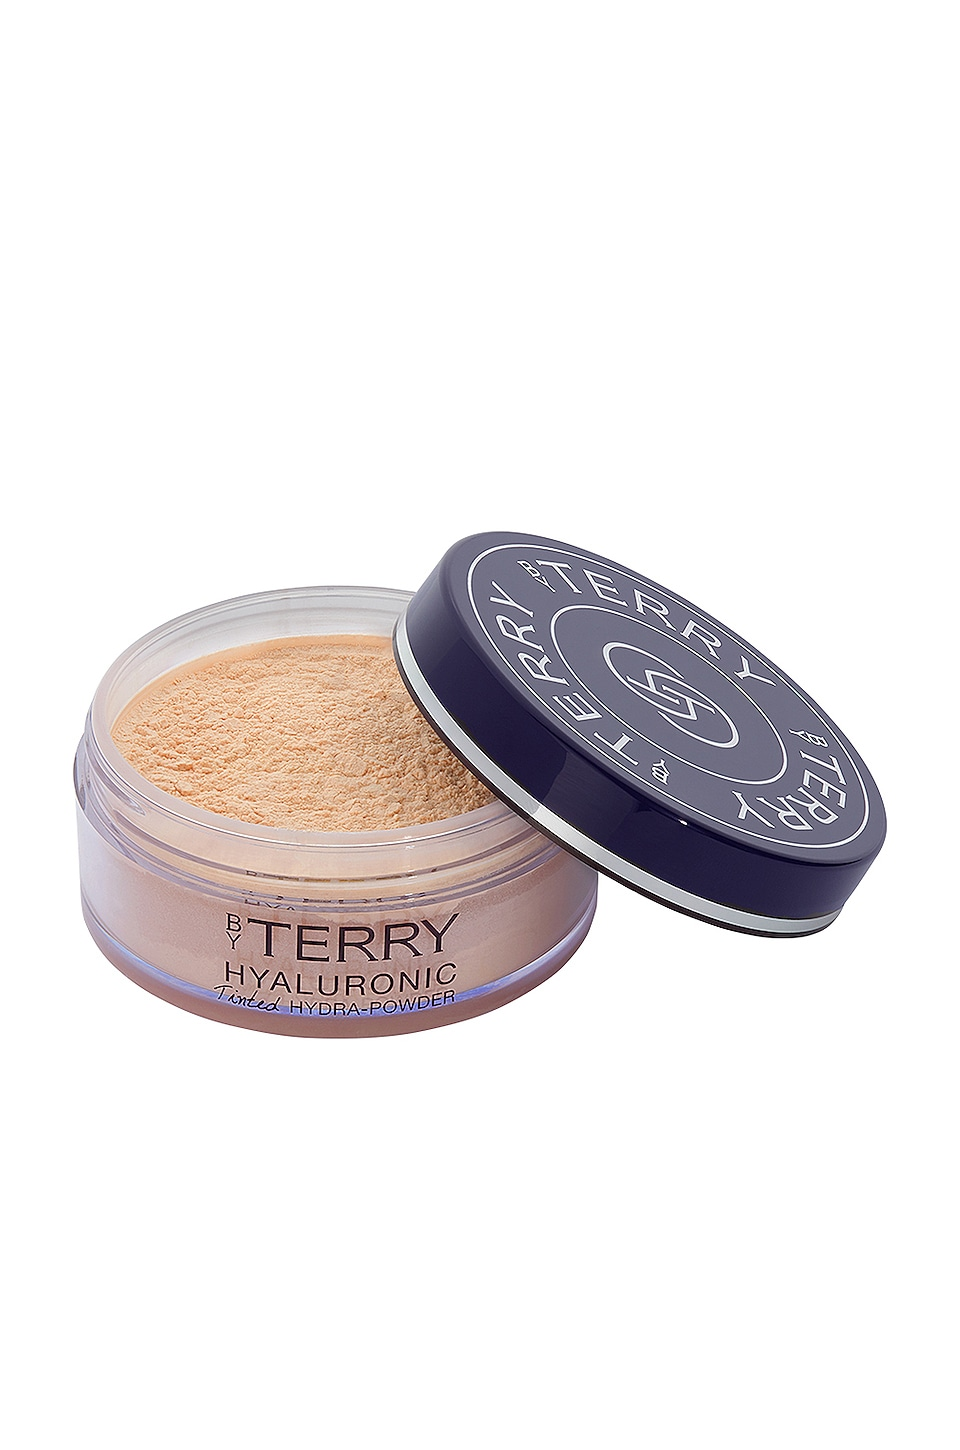 By Terry Hyaluronic Hydra-Powder Tinted Veil in N100. Fiar